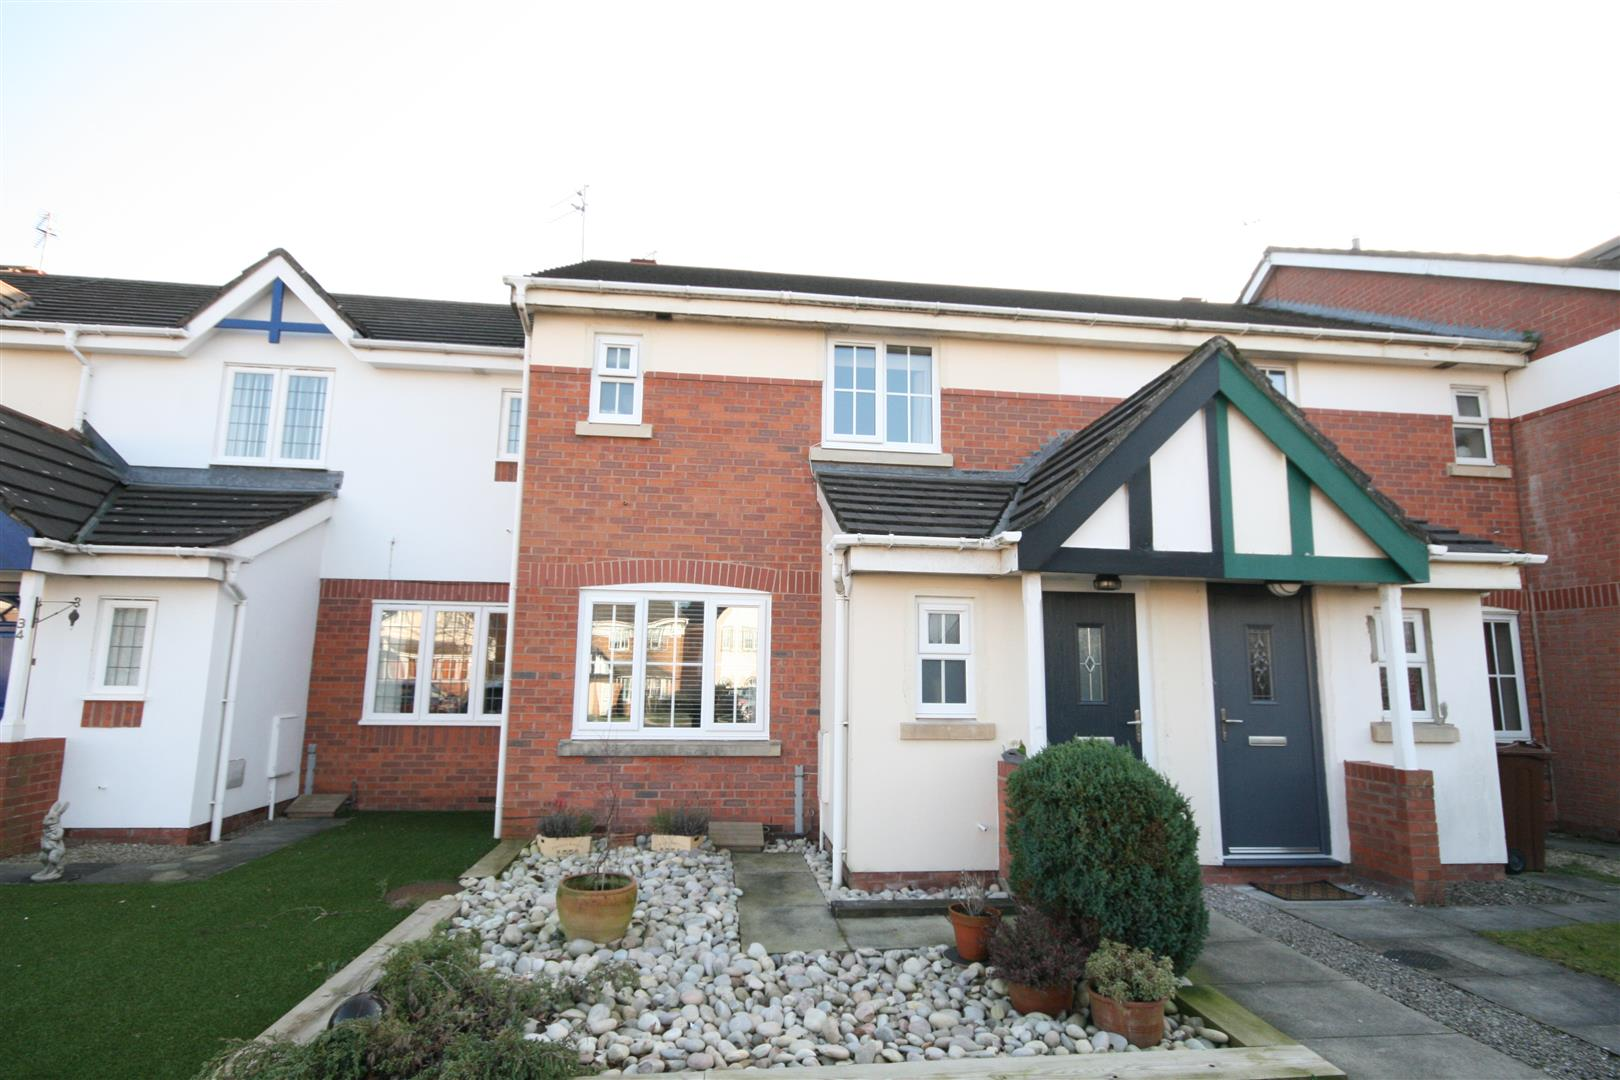 3 Bedrooms Mews House for sale in Chandlers Rest, Lytham